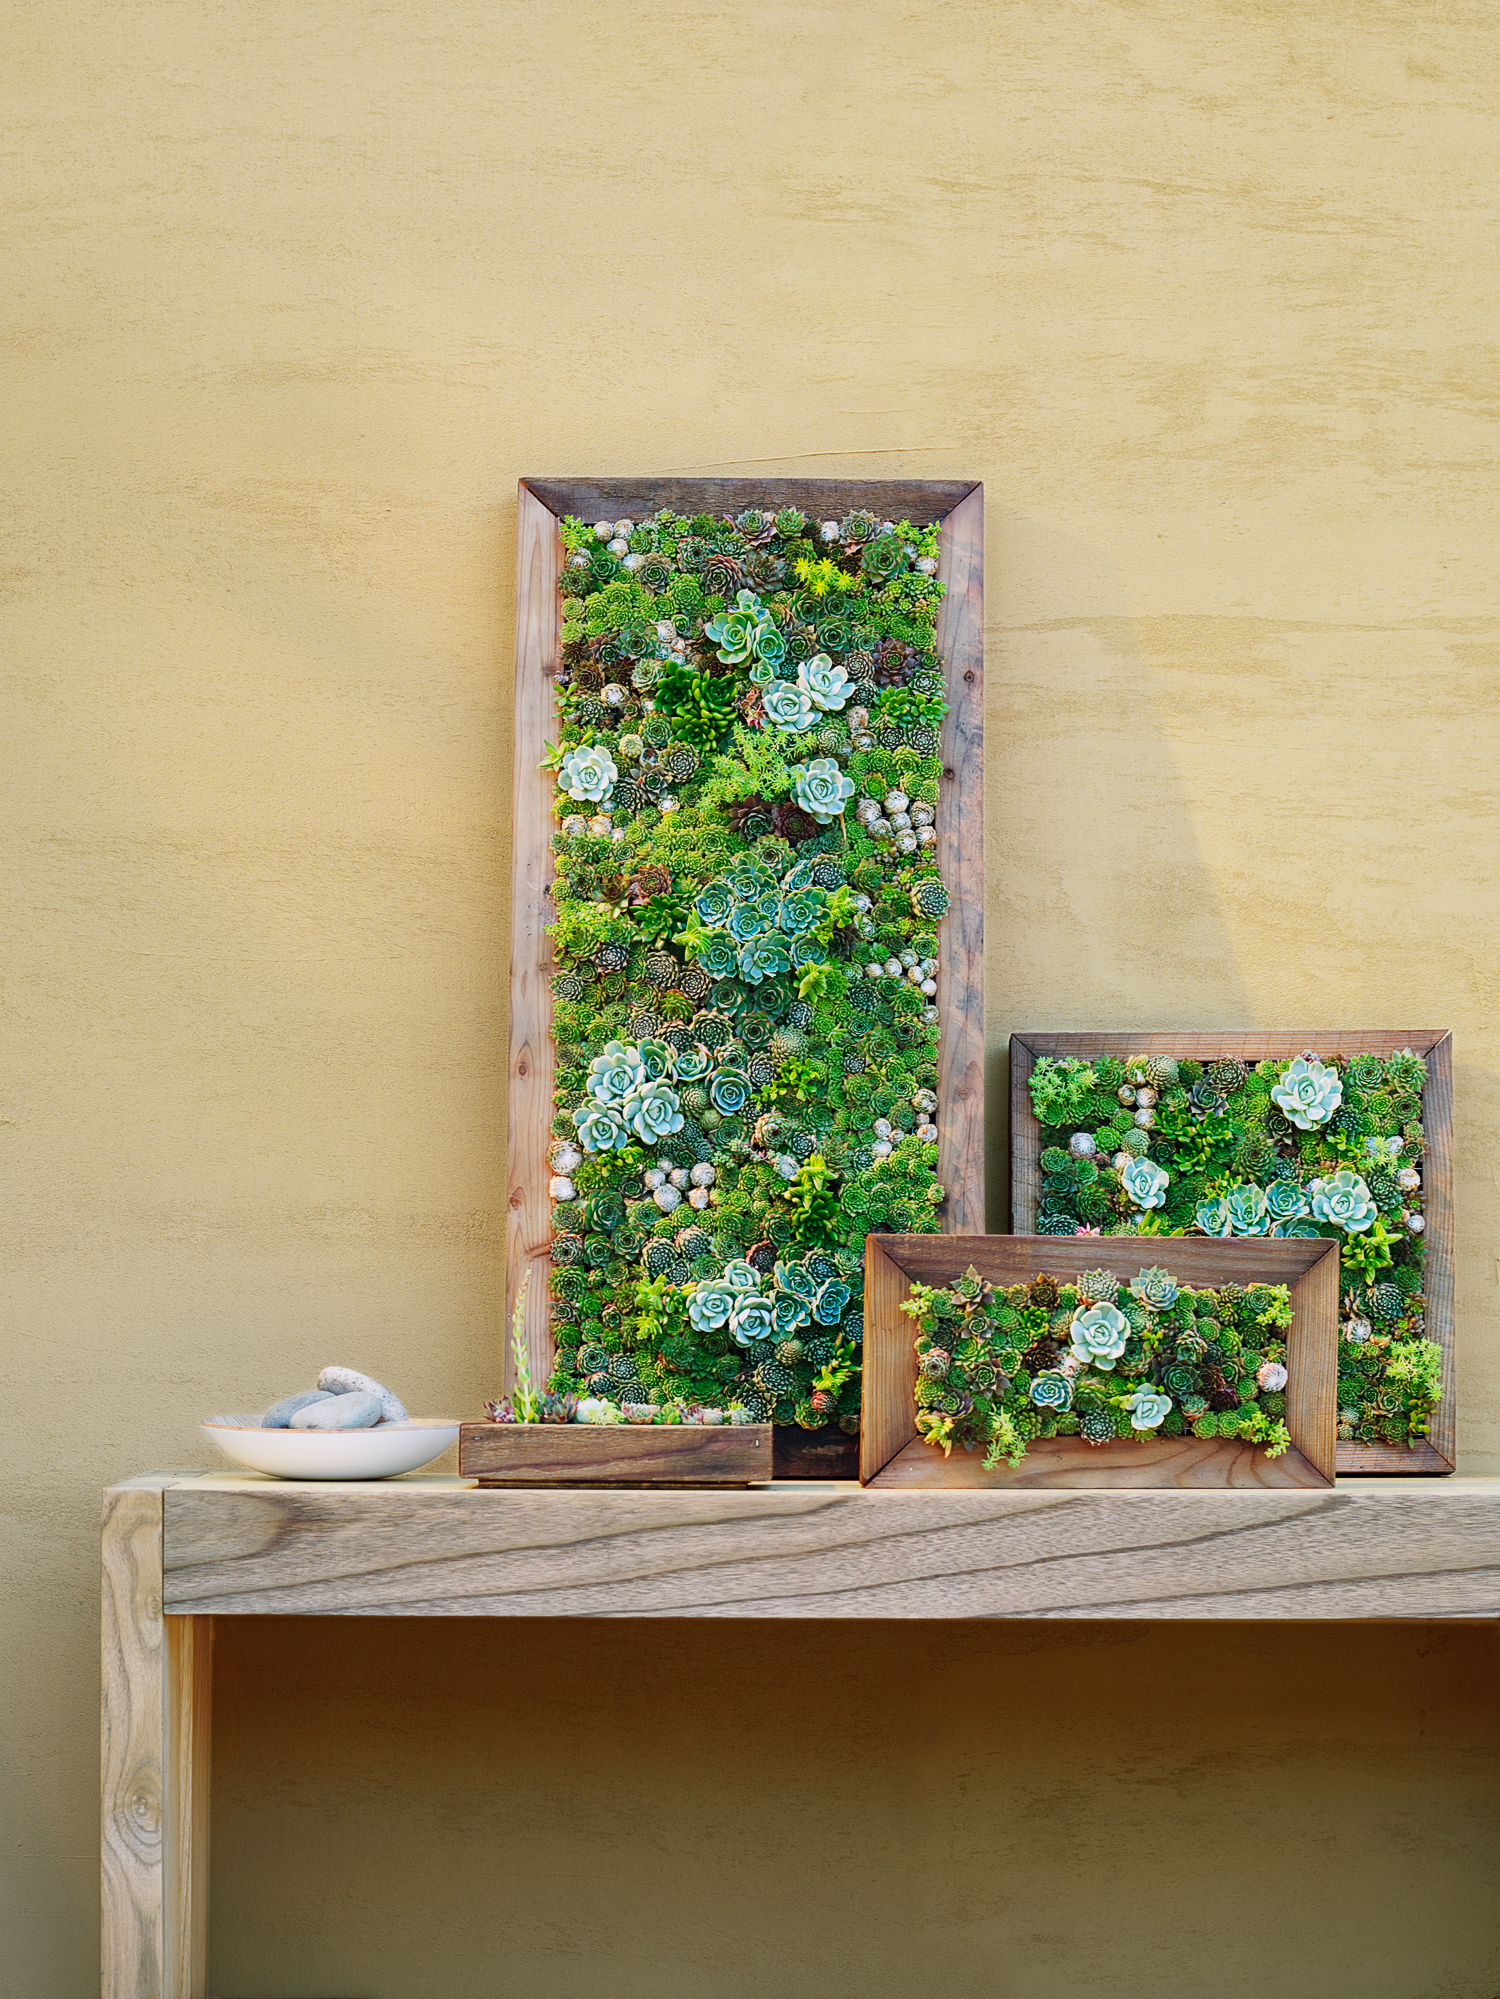 Make Your Own Living Succulent Art - Sunset Magazine